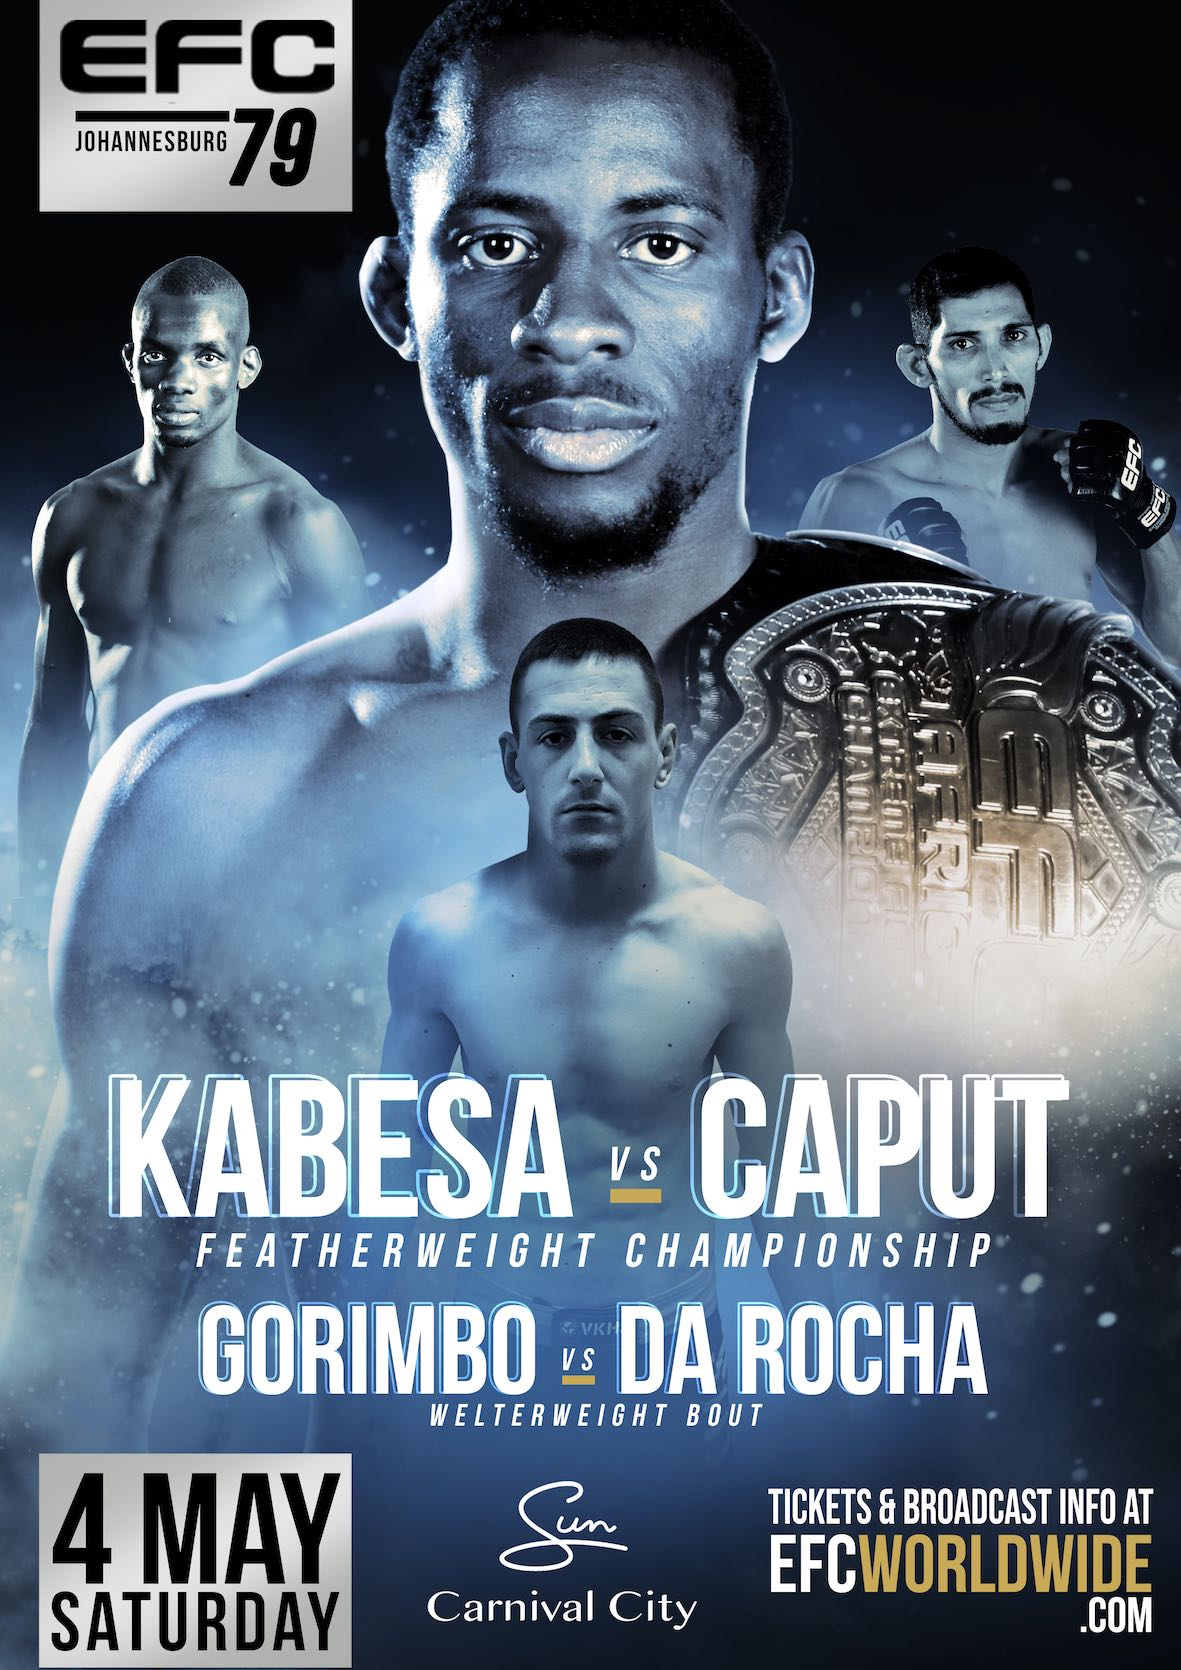 See the full fight card for EFC 79 featuring 11 exciting MMA bouts